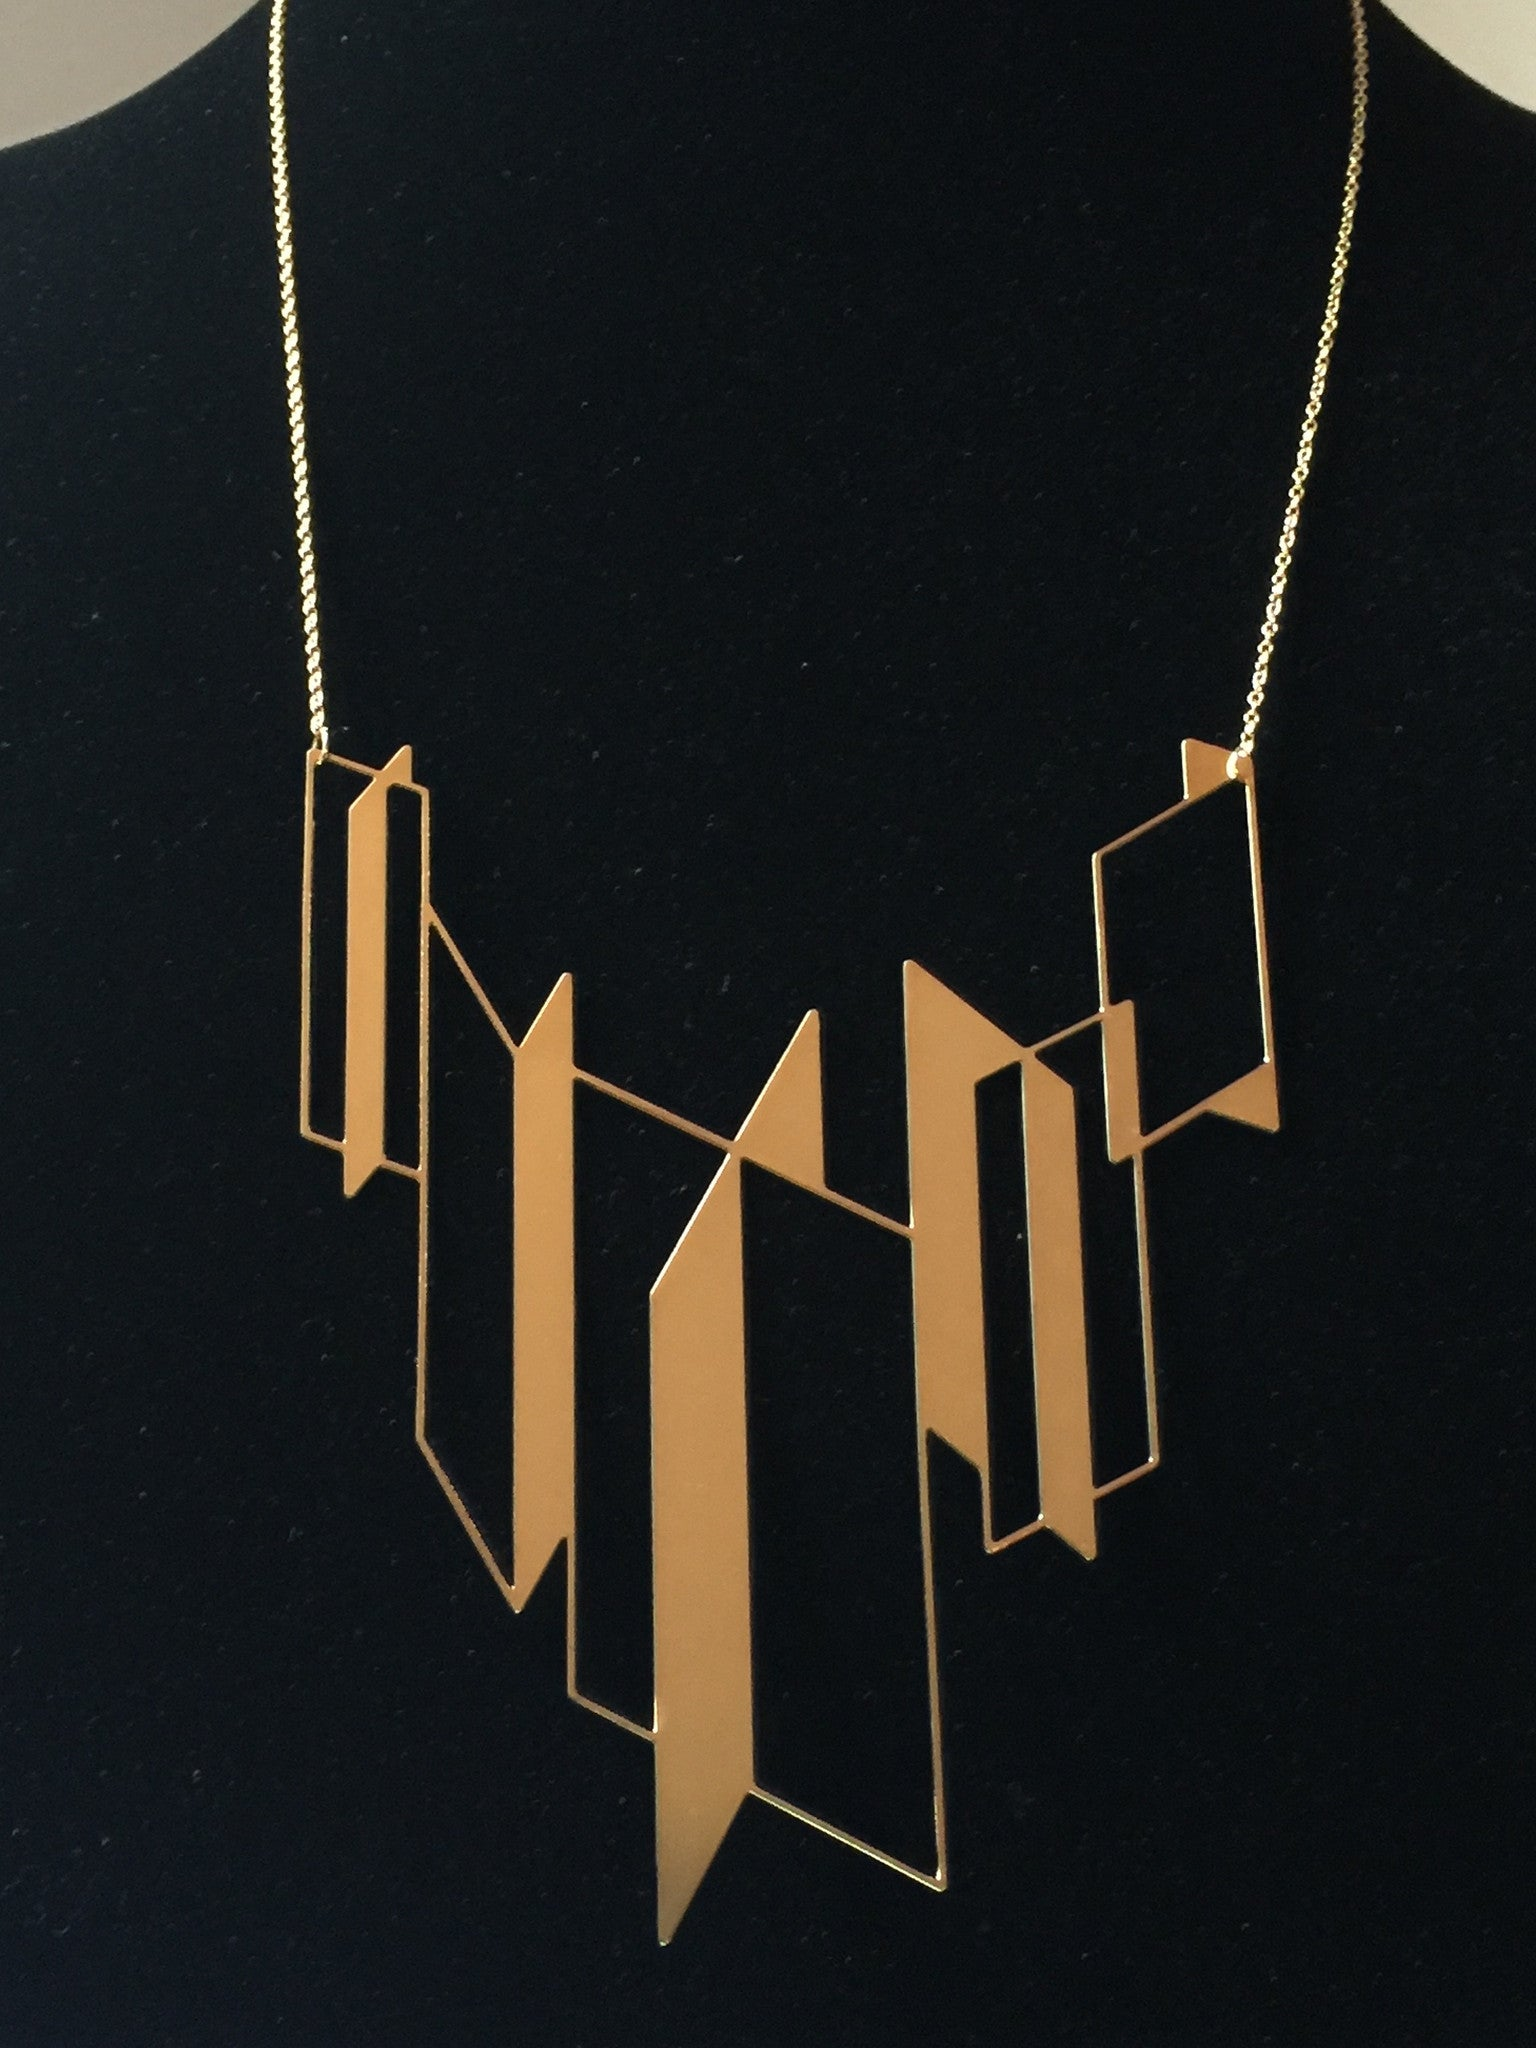 #1 statement necklace gold